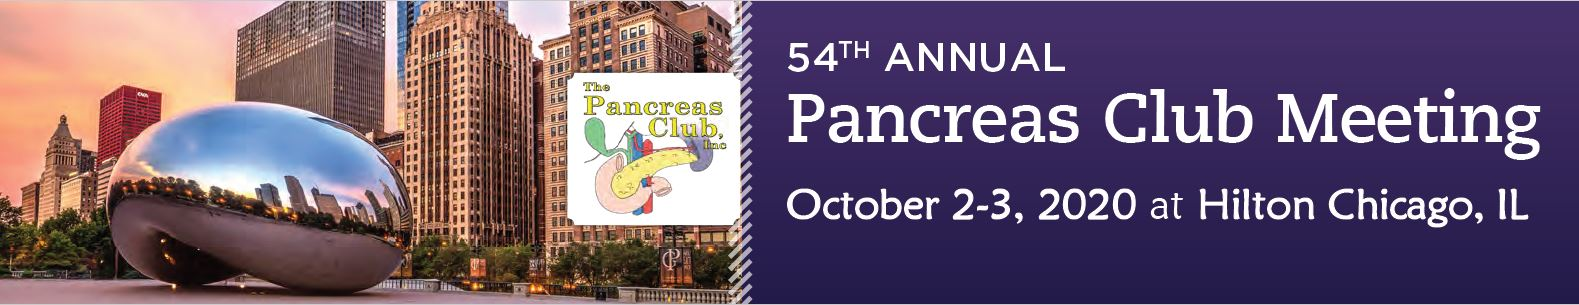 Pancreas Club 54<sup>th</sup> ANNUAL MEETING